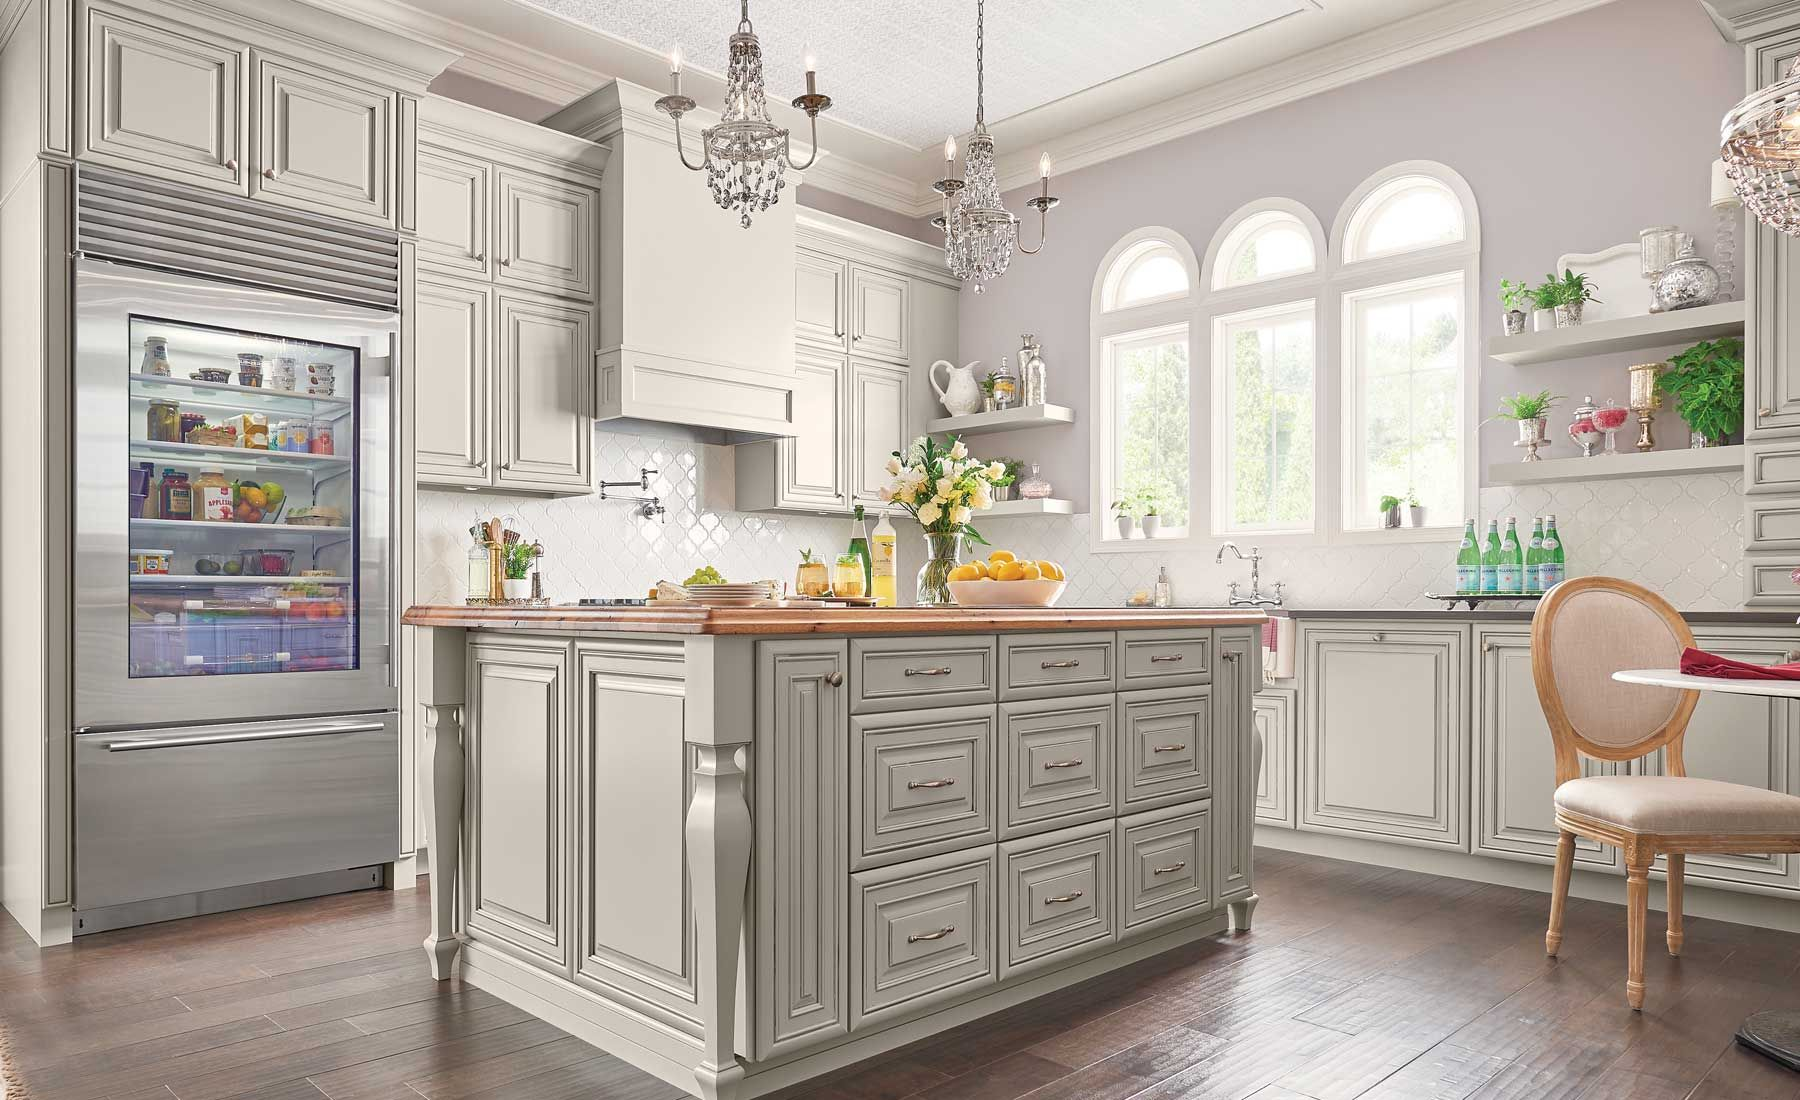 Waypoint Living Spaces kitchen in Painted Harbor  Kitchen